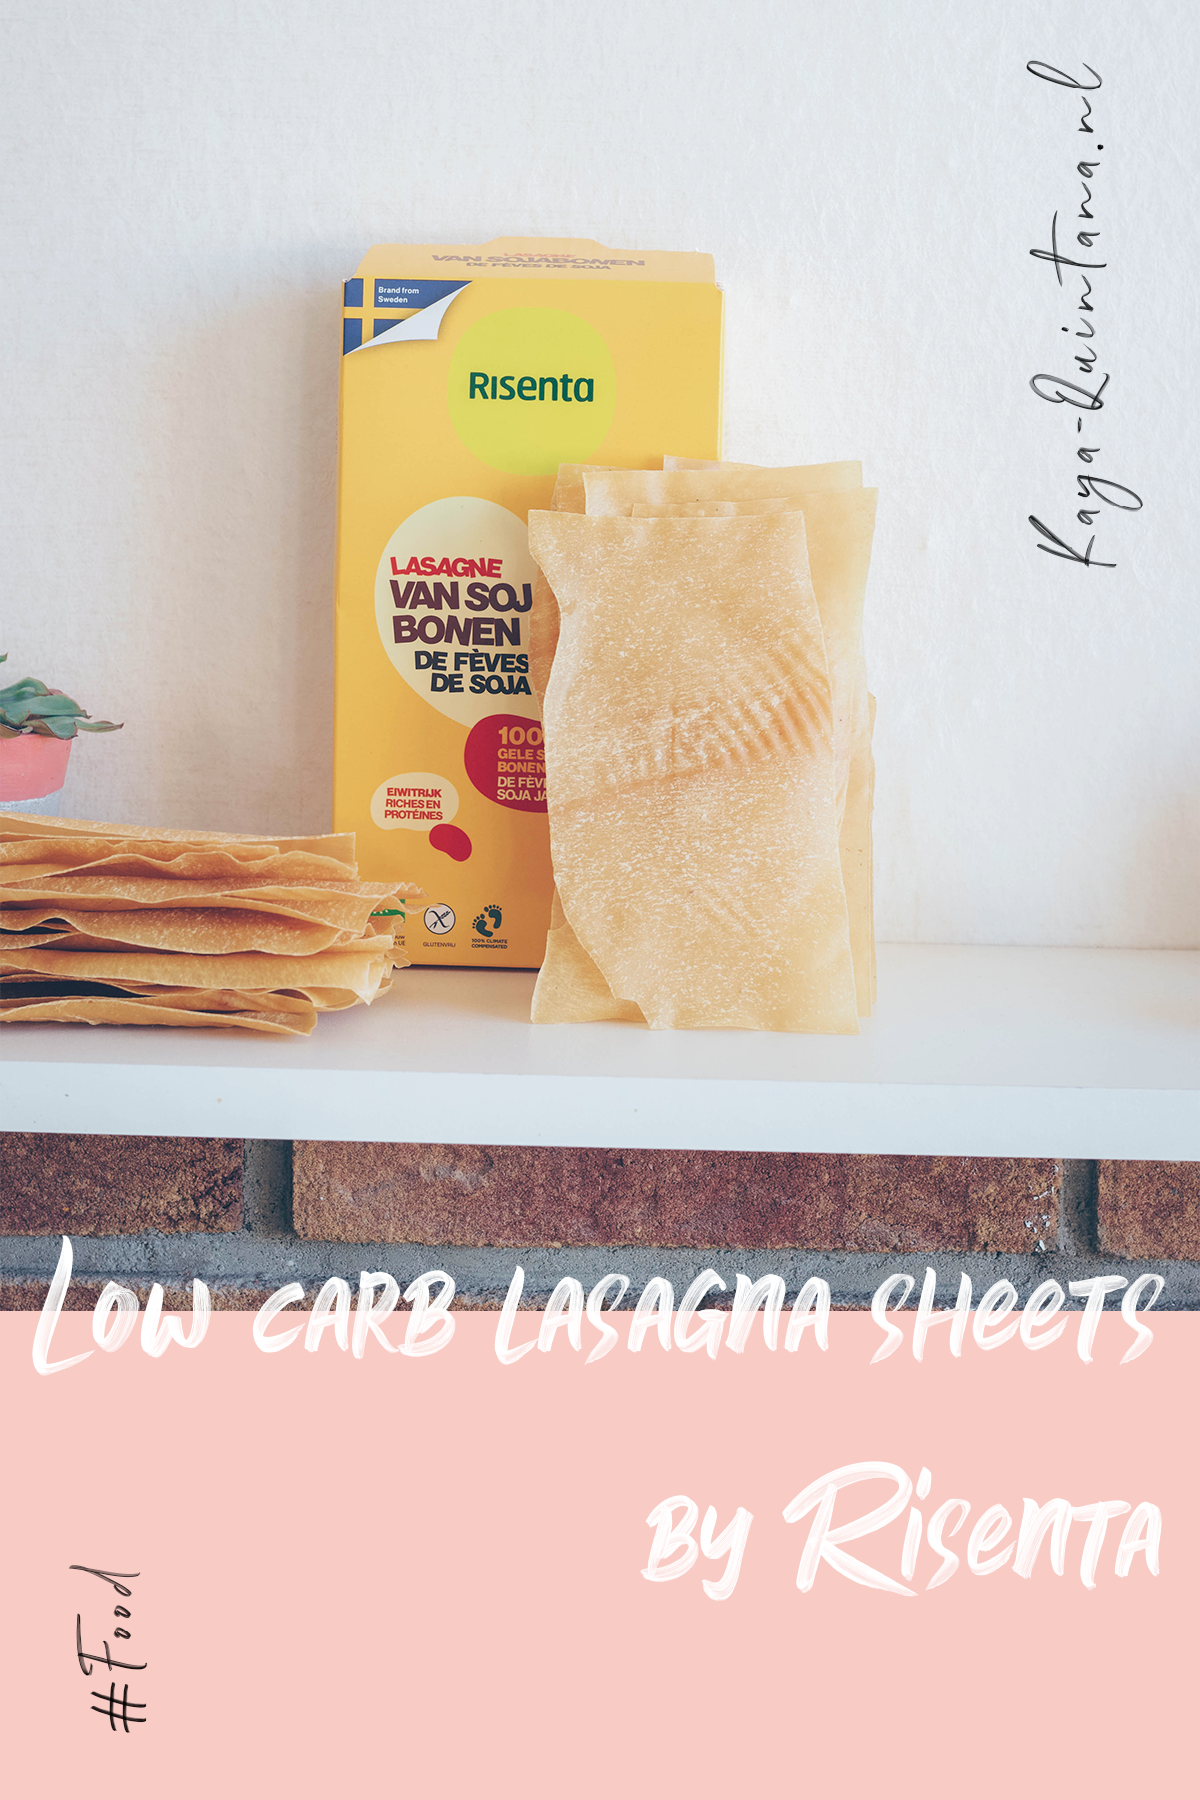 Low carb lasagna sheets made from yellow soybeans by Risenta